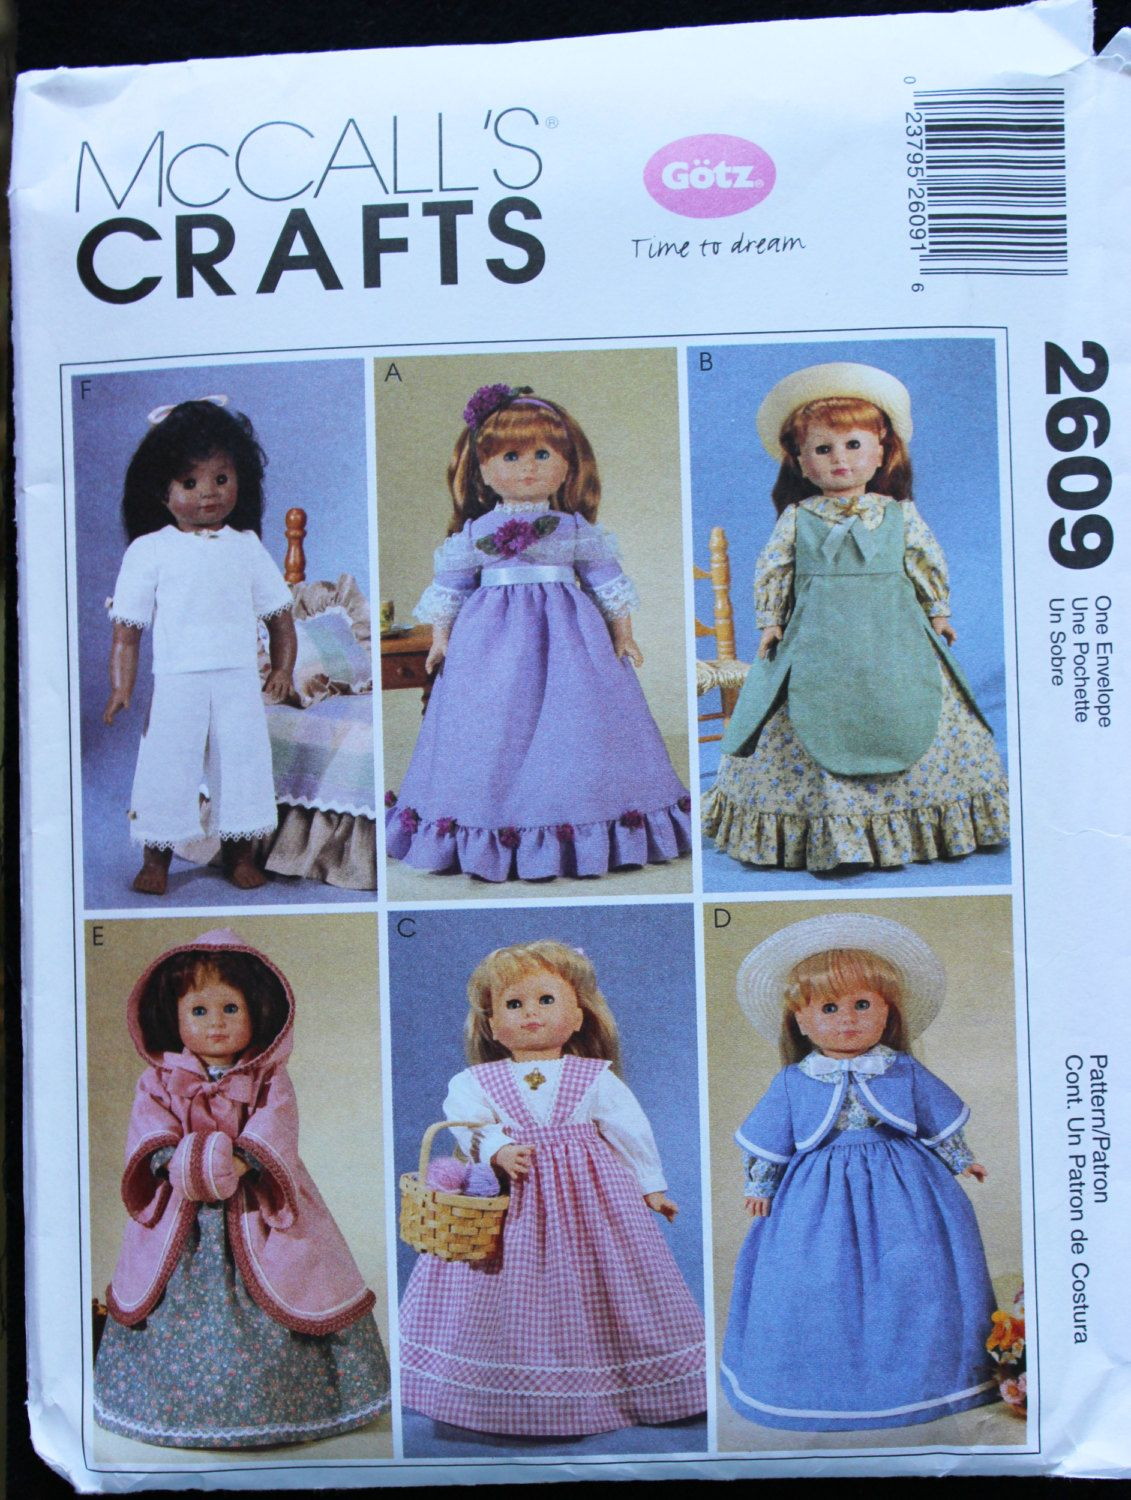 "Sewing Pattern McCall's Crafts Gotz Doll Pattern McCall's 2609 18"" 18 Inch Doll Clothes Dress Pinafore Shawl Blouse Hooded Coat Muff Skirt by PastThatLasts on Etsy"